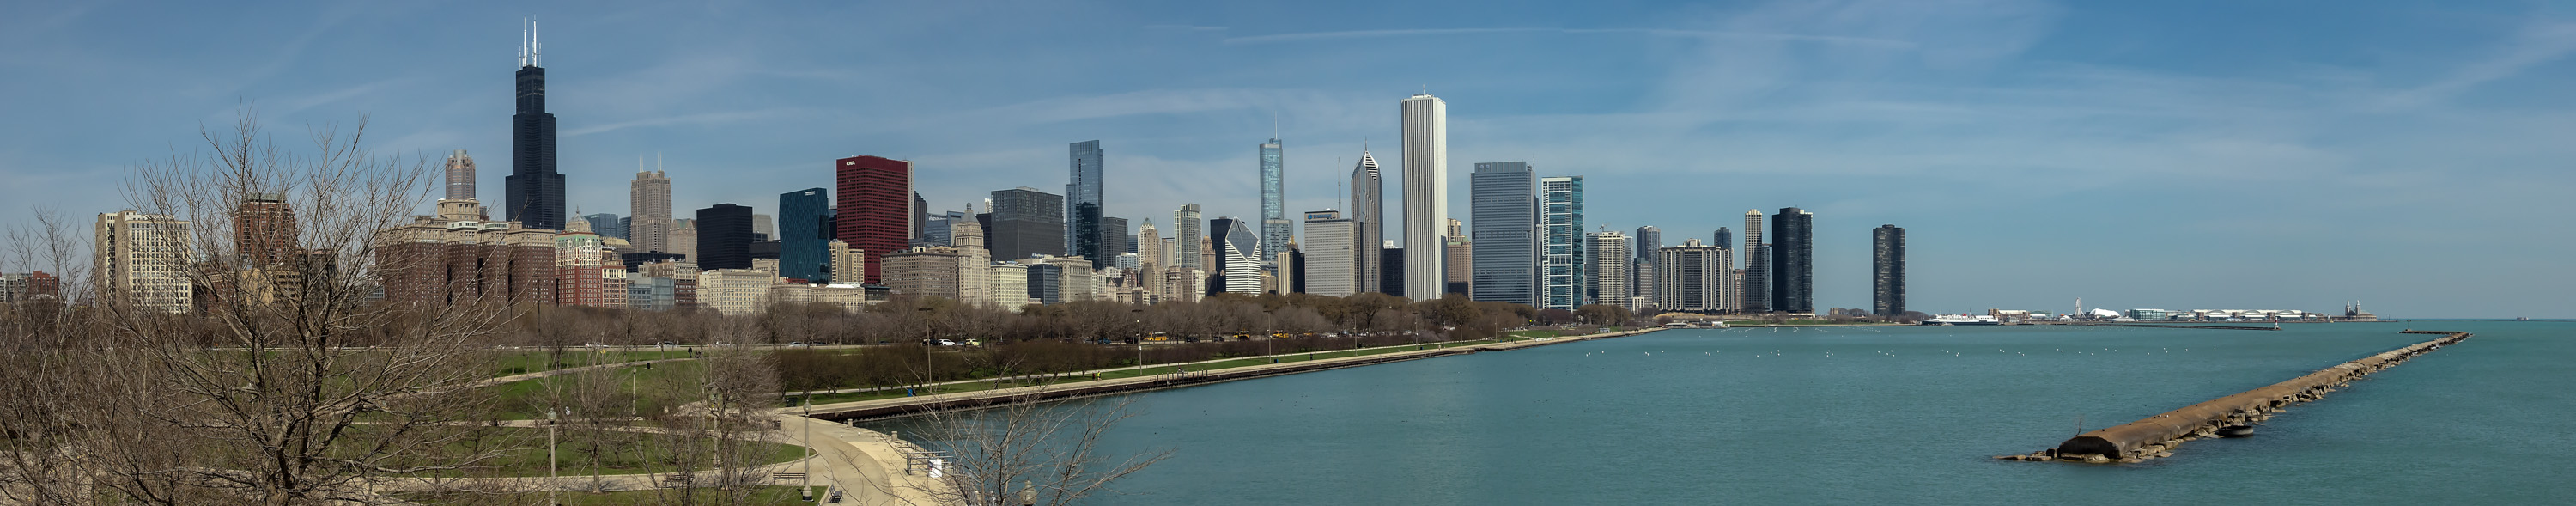 Chicago as seen from Shedd Aquarium